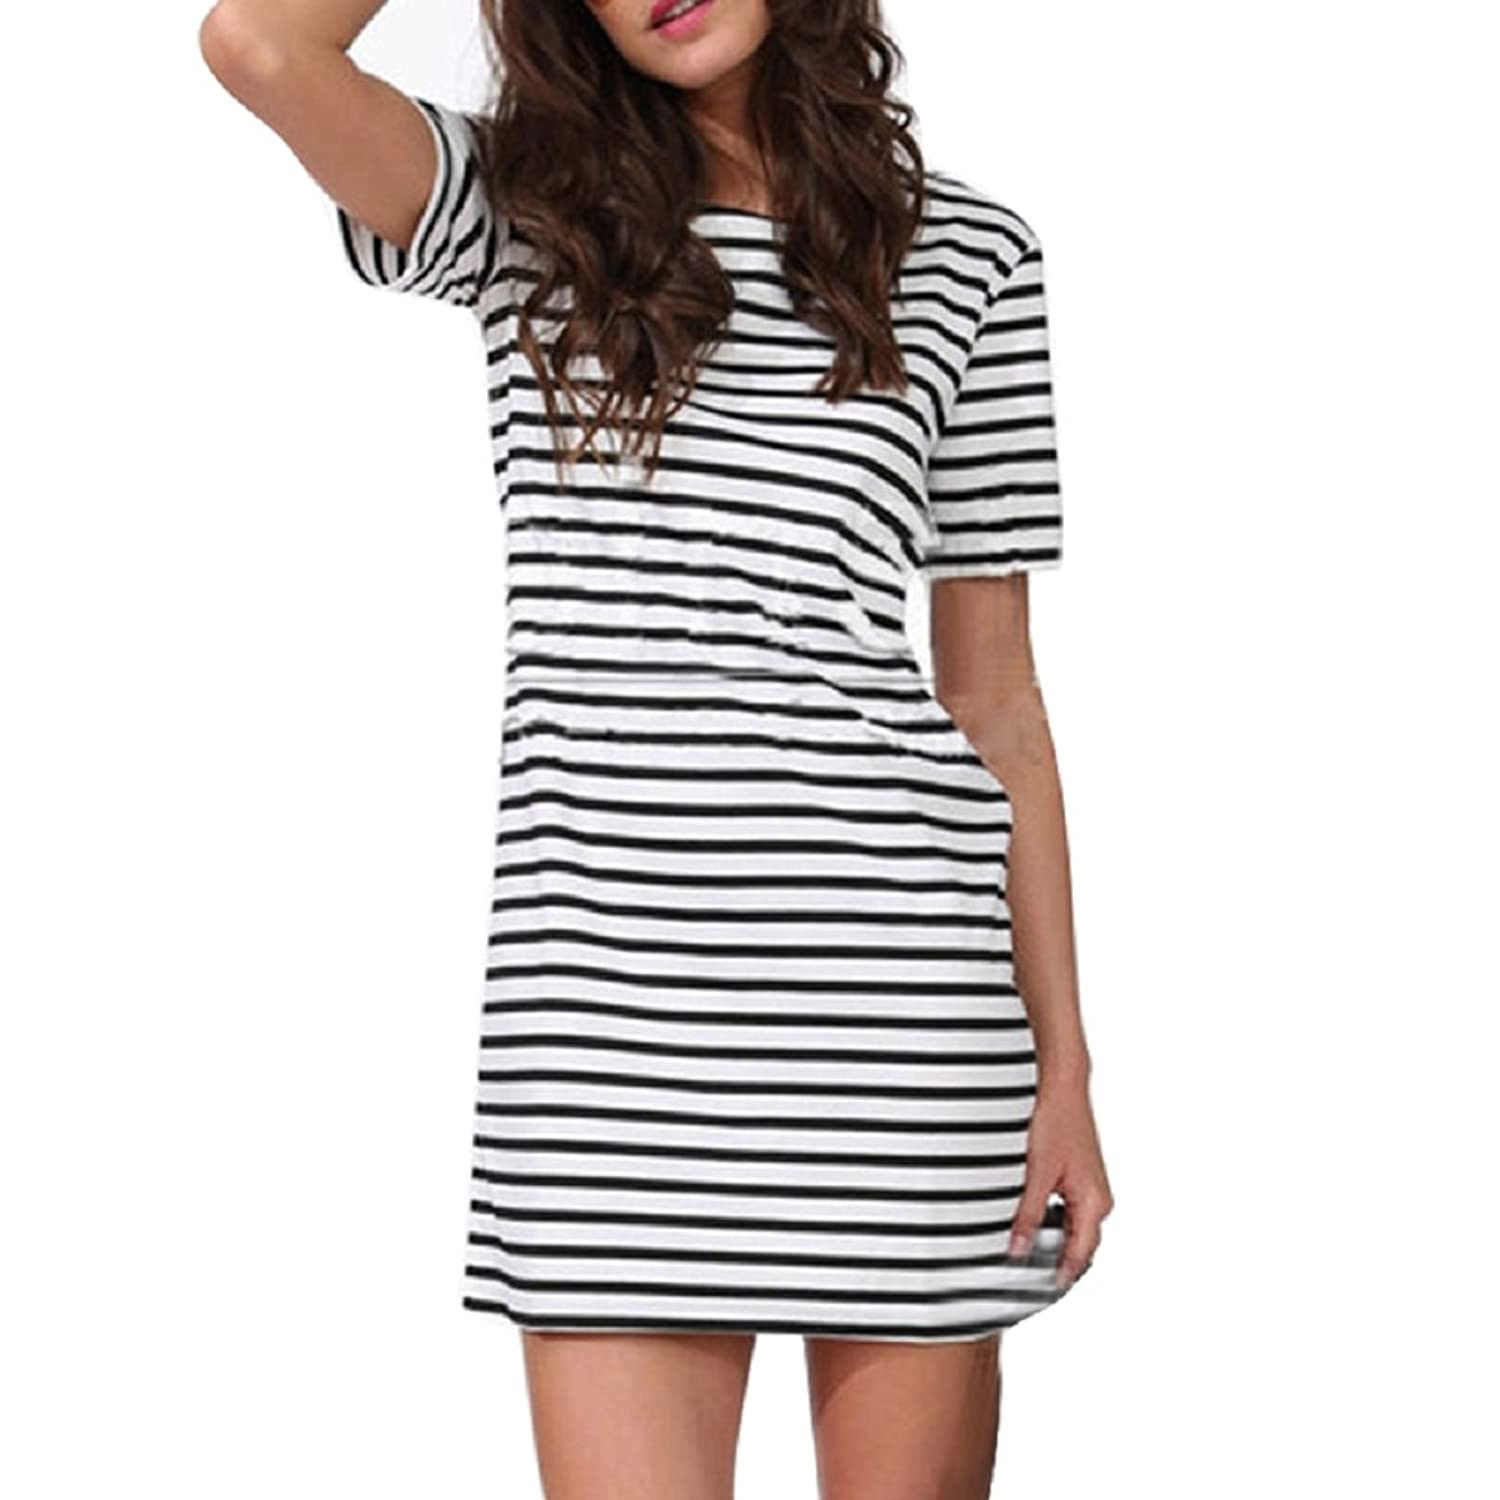 NOMENI Fashion Women Short Sleeve Round Neck Stripe Casual Short Mini Dress